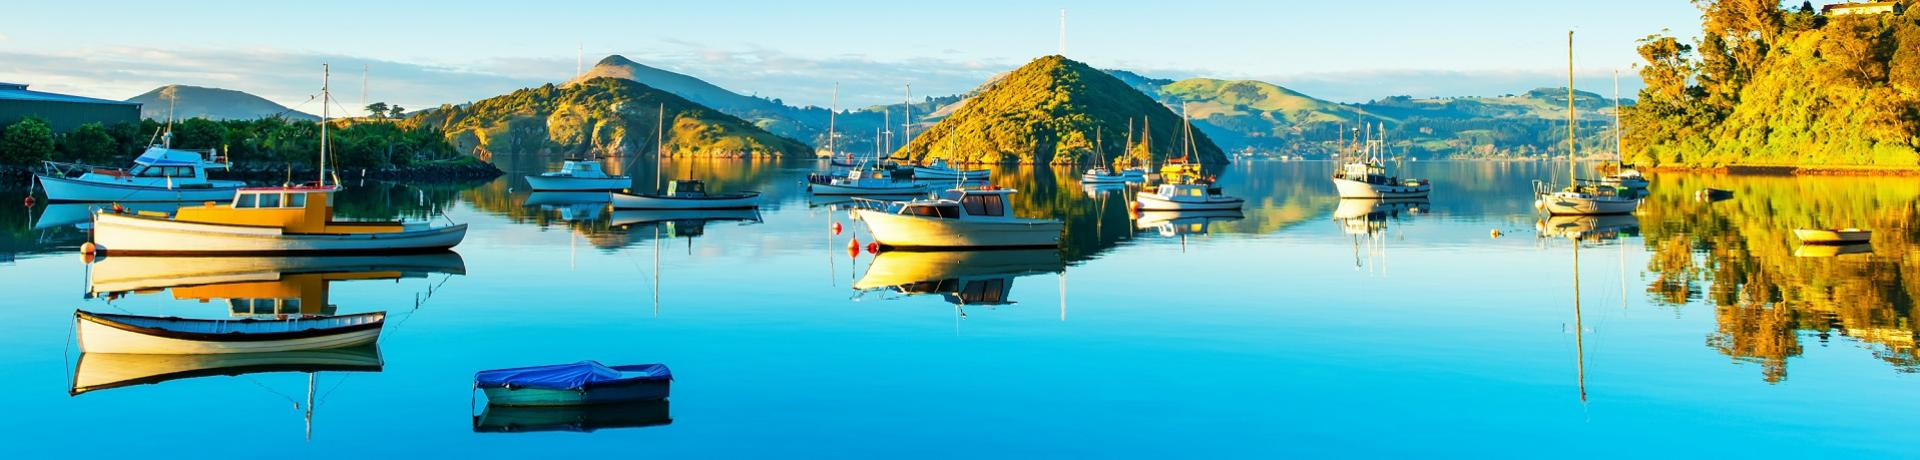 Neuseeland: Port Chalmers - Emotion